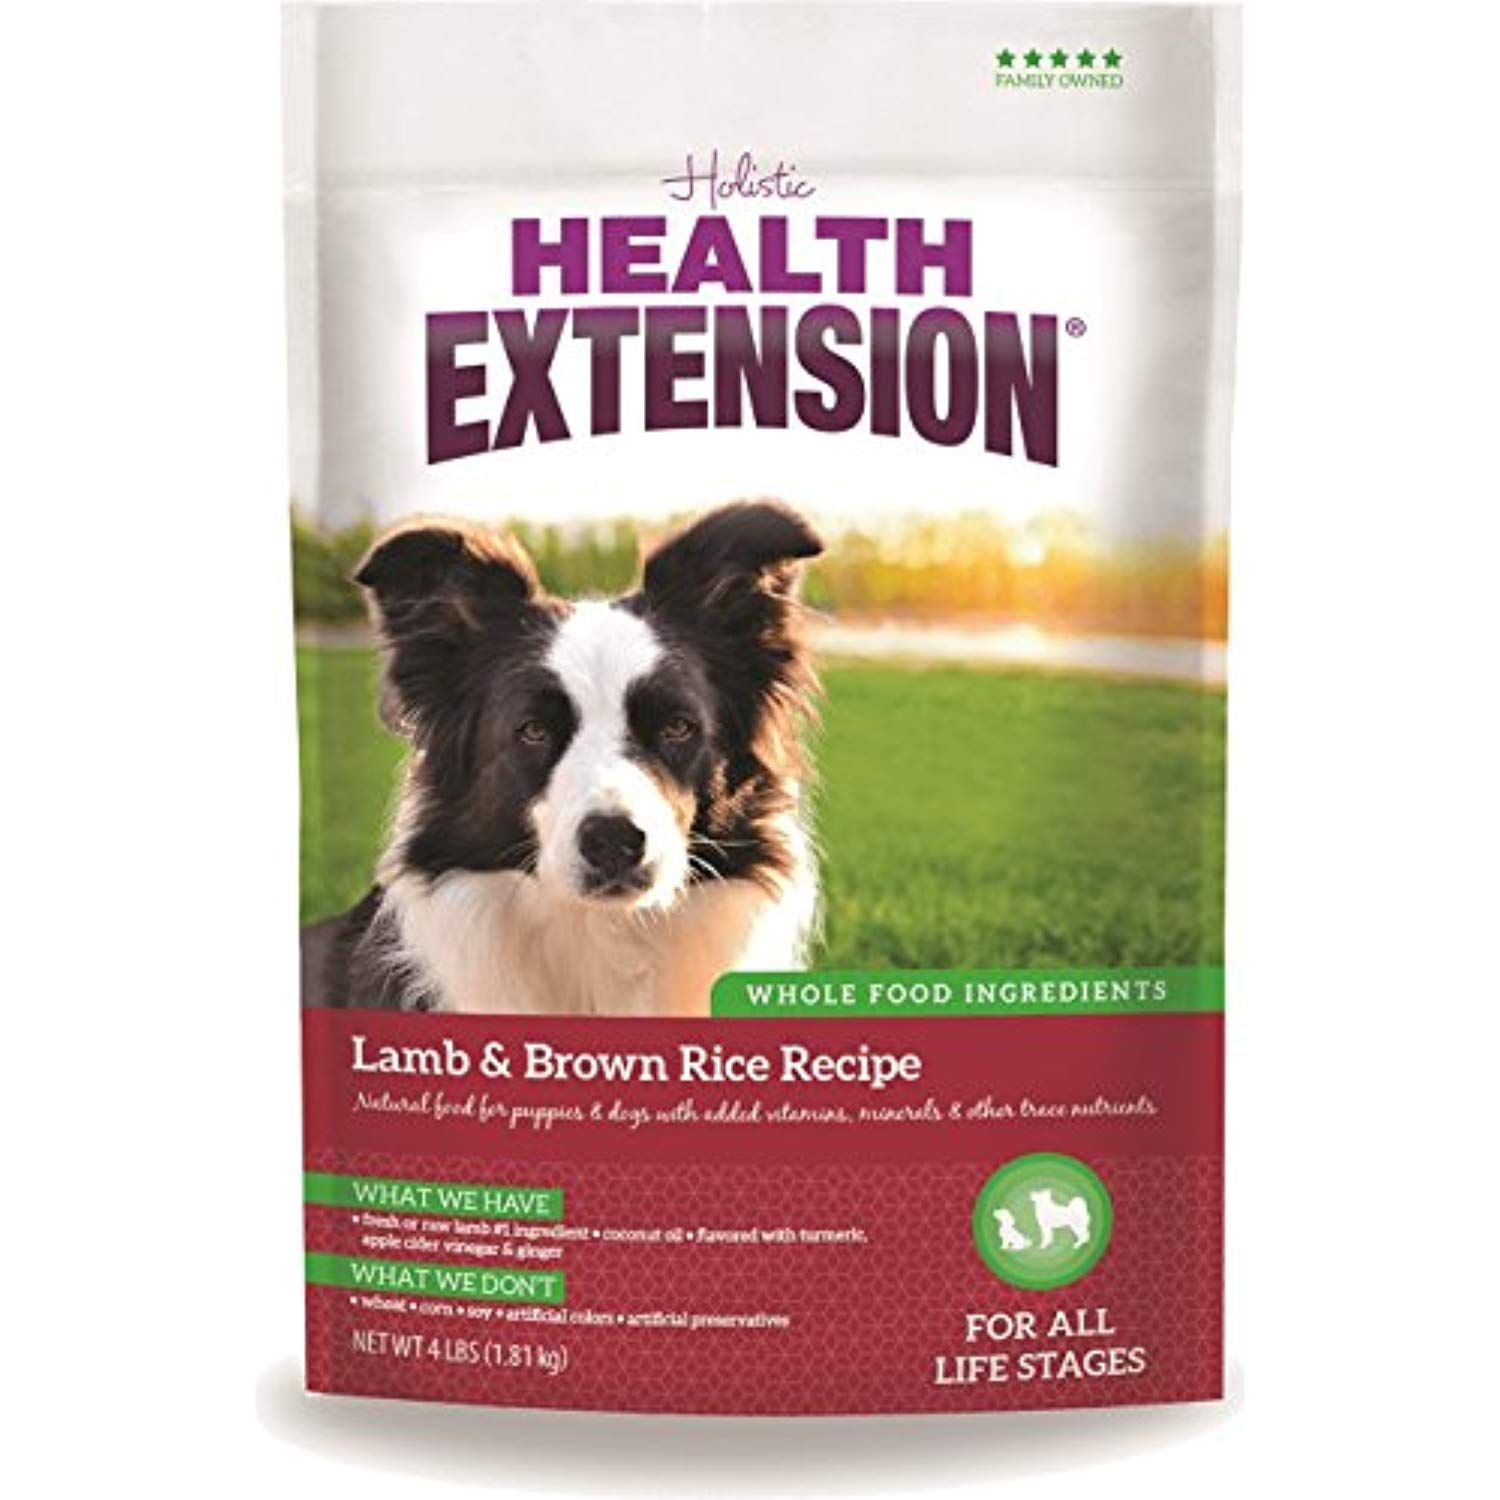 Health extension lamb and brown rice 30pound more